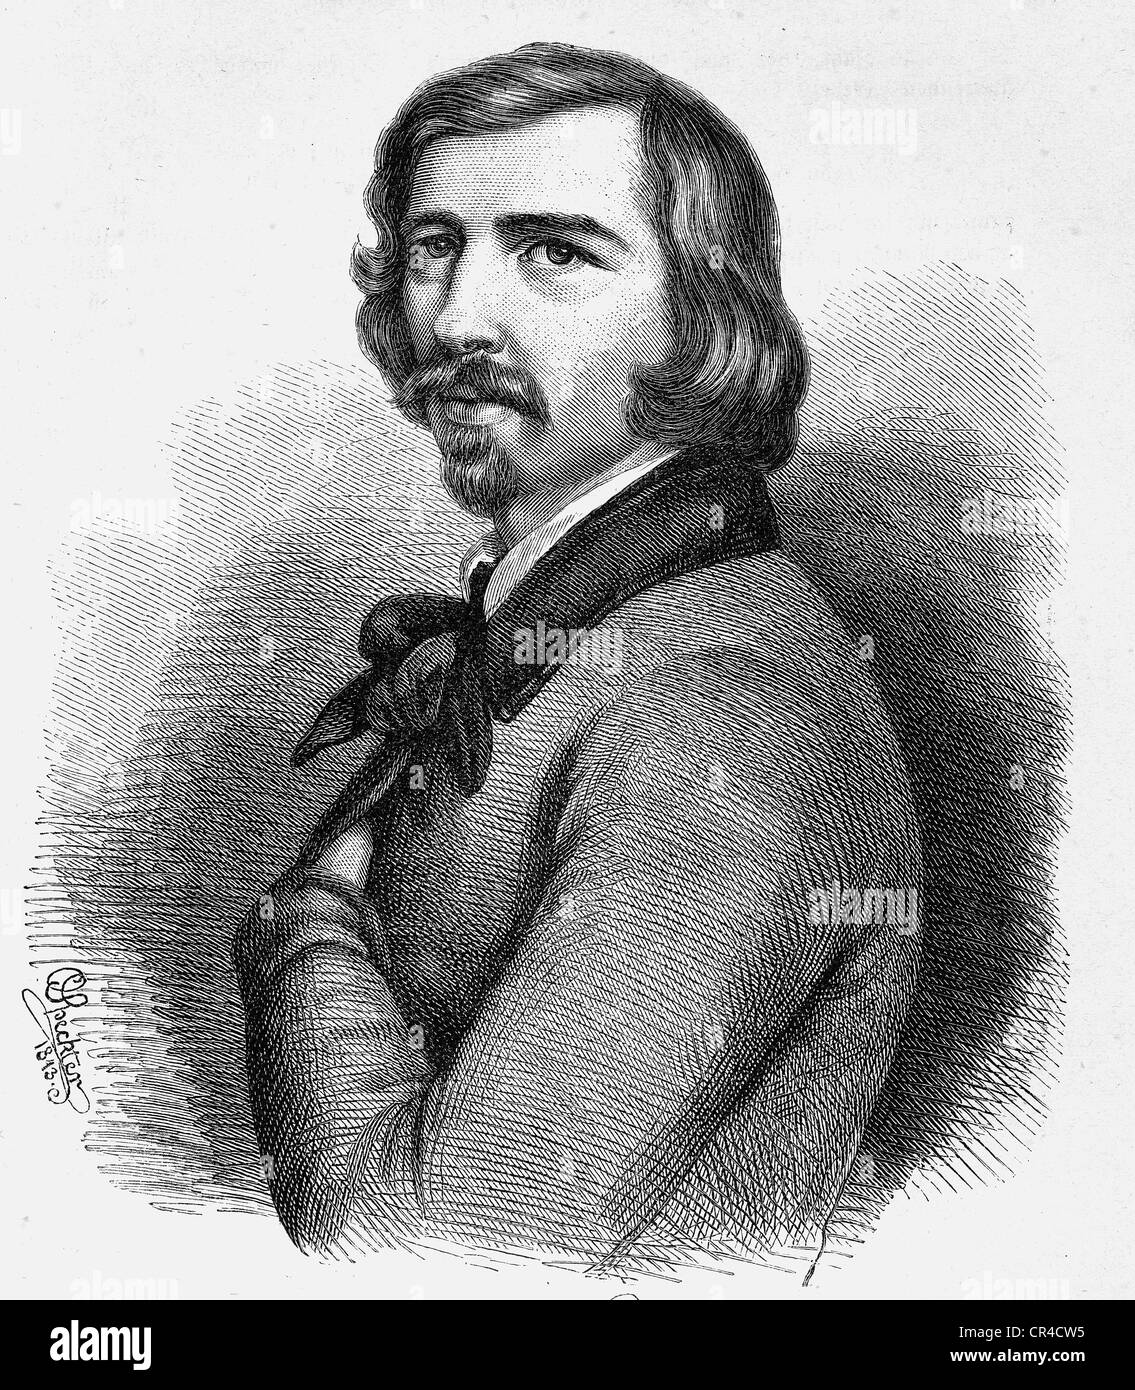 Franz Emanuel August Geibel (1815 - 1884), poet, steel engraving according a drawing from 1843 - Stock Image